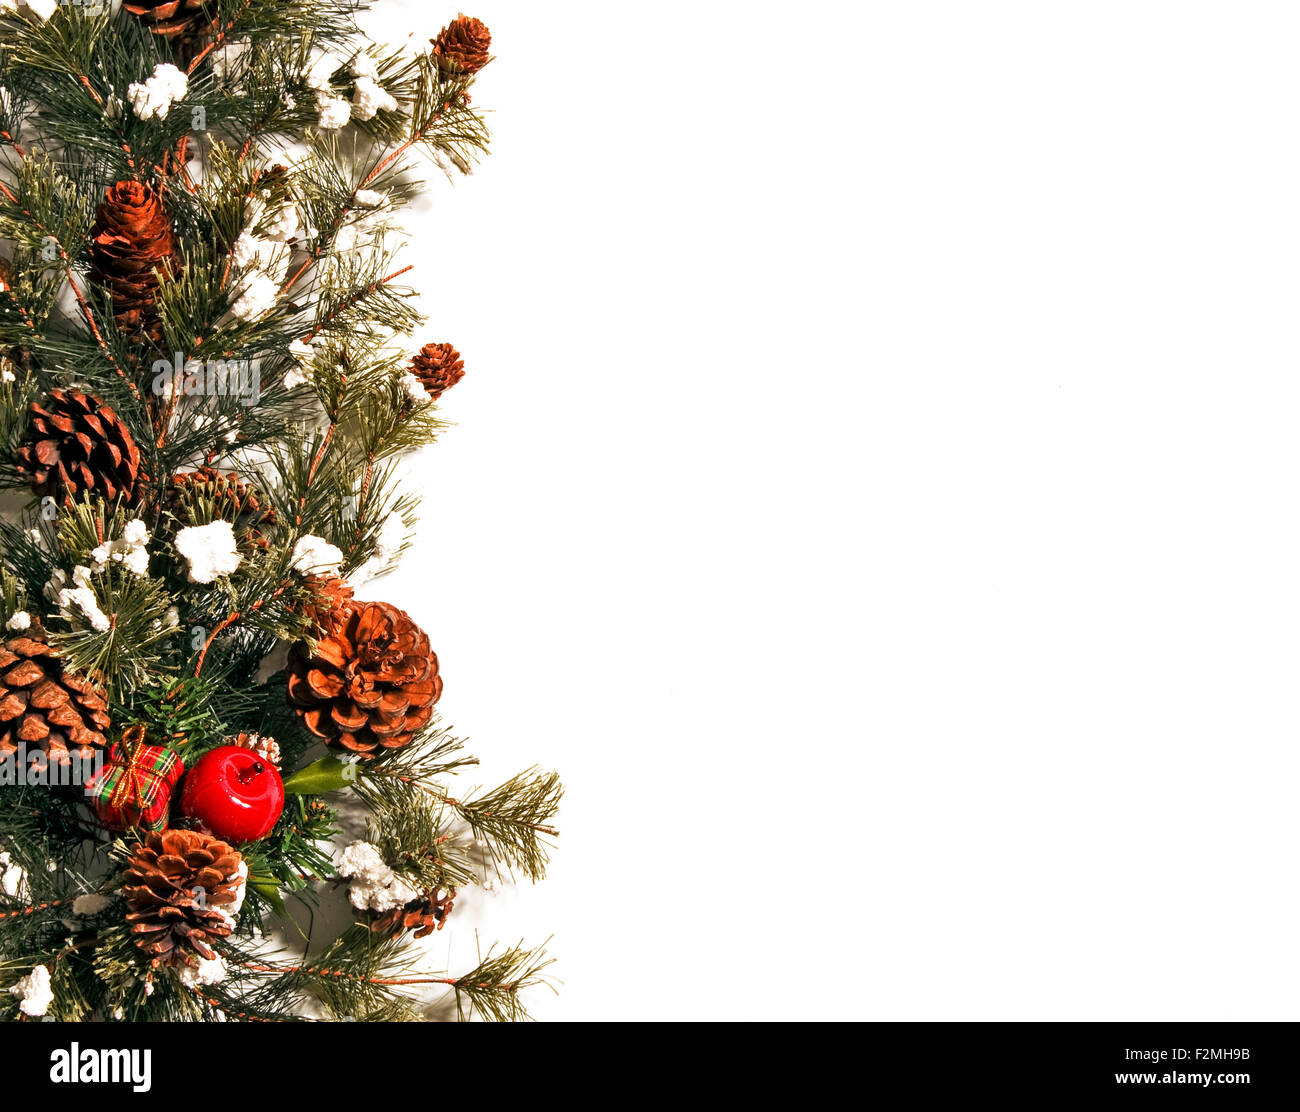 Christmas Border With Pinecones On White Background - Stock Image